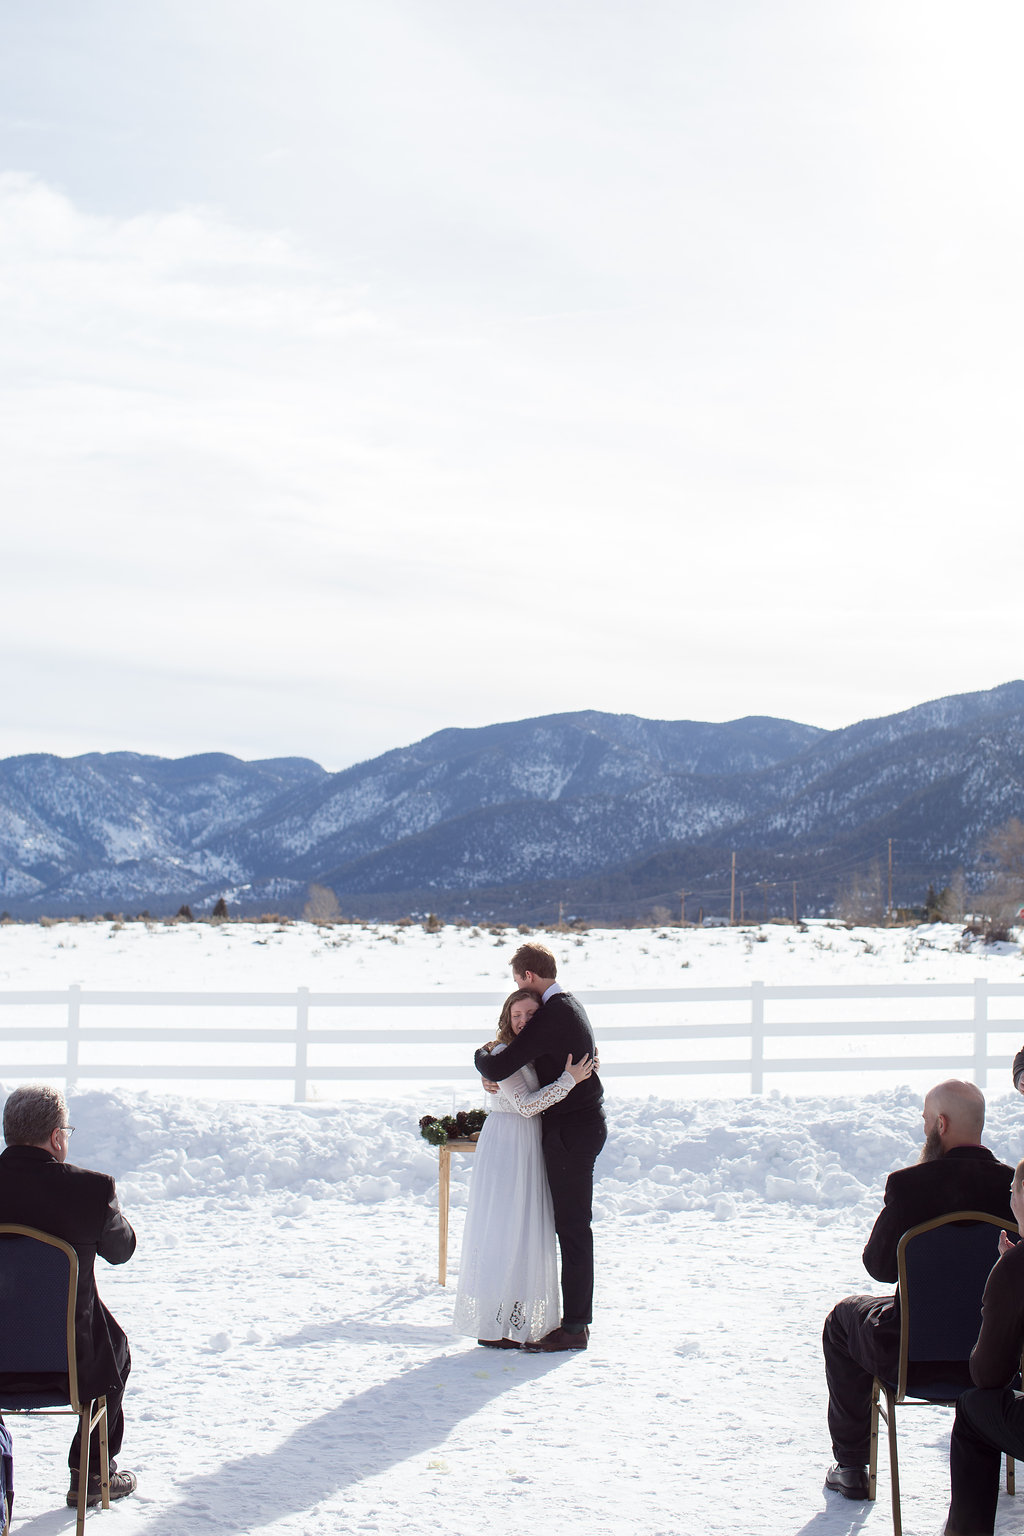 Bride and groom embrace ceremony Pine Valley Utah